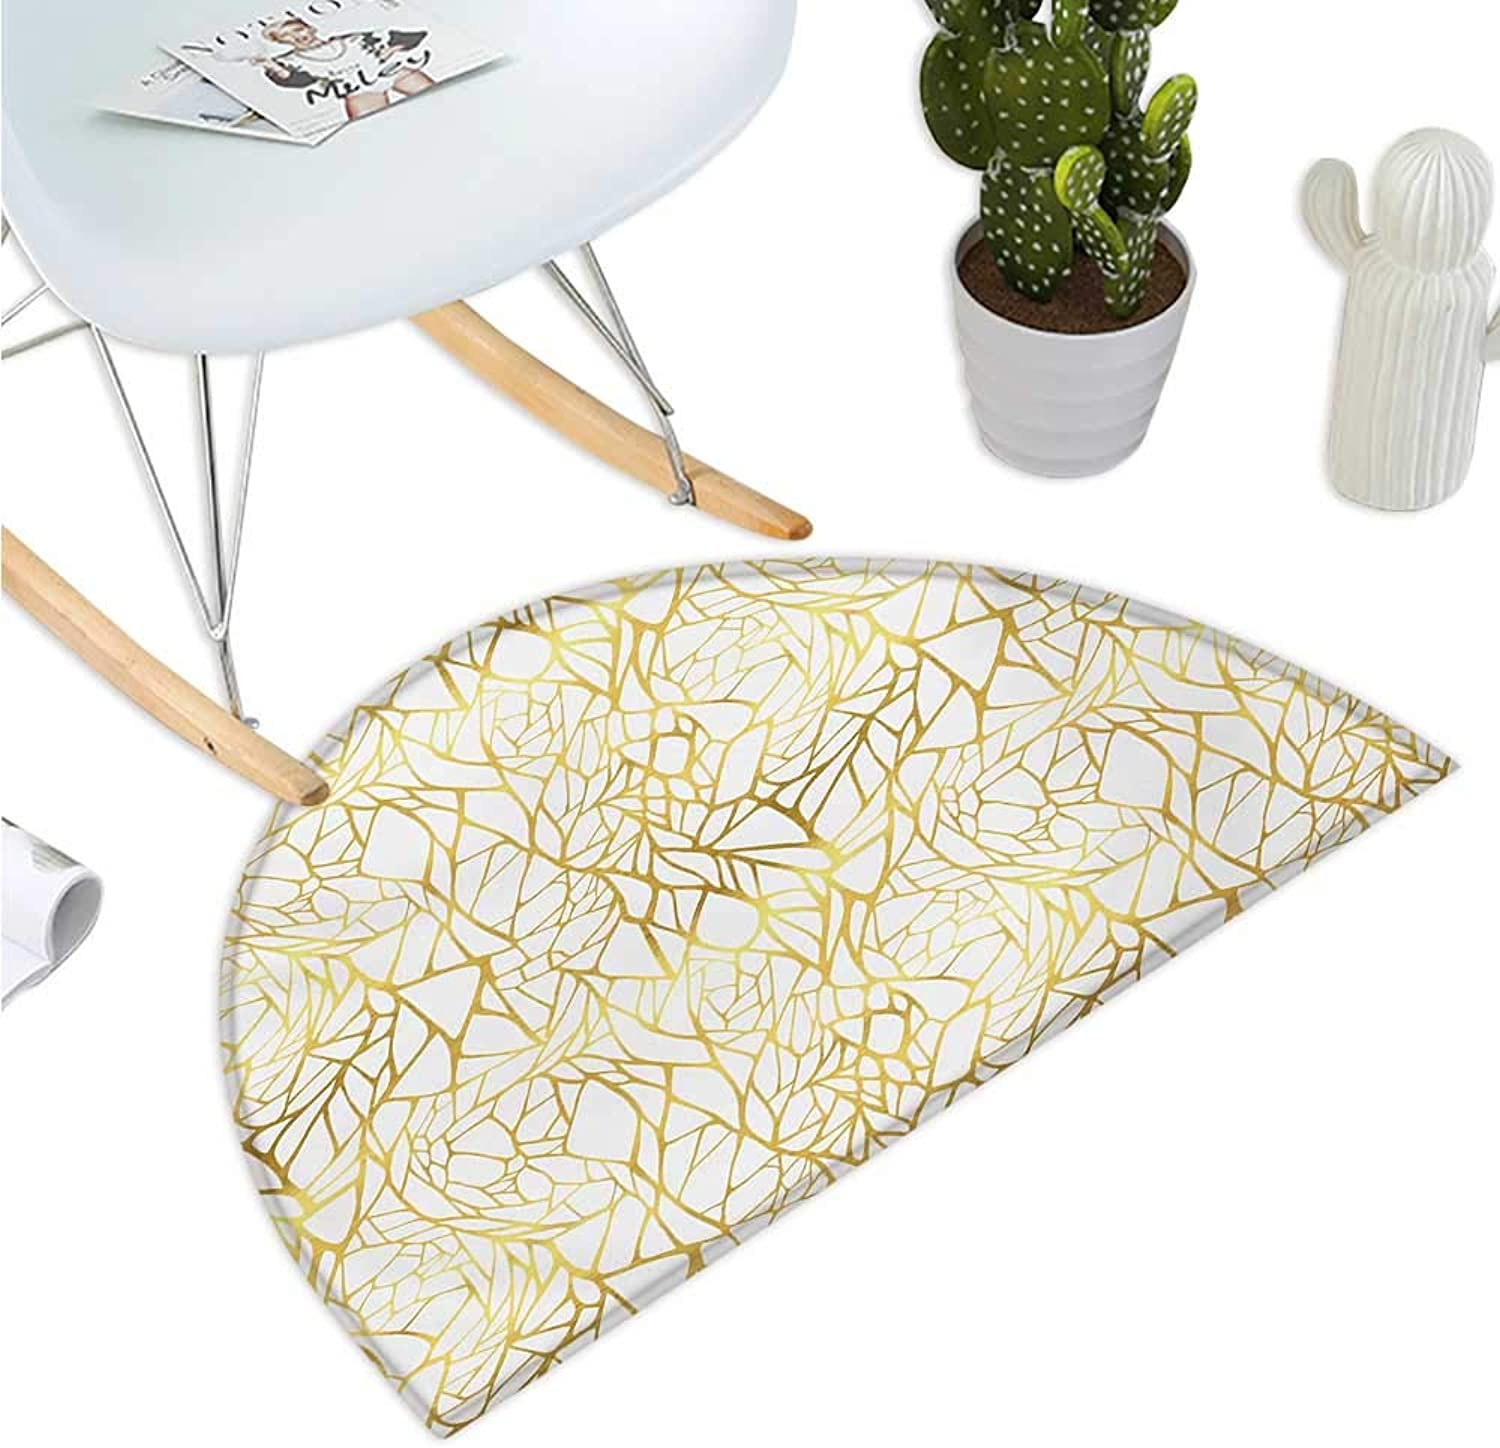 Contemporary Semicircular Cushion Abstract Ornament Exotic Animal Pattern Style Feminine Glamor Print Entry Door Mat H 39.3  xD 59  gold Yellow and White